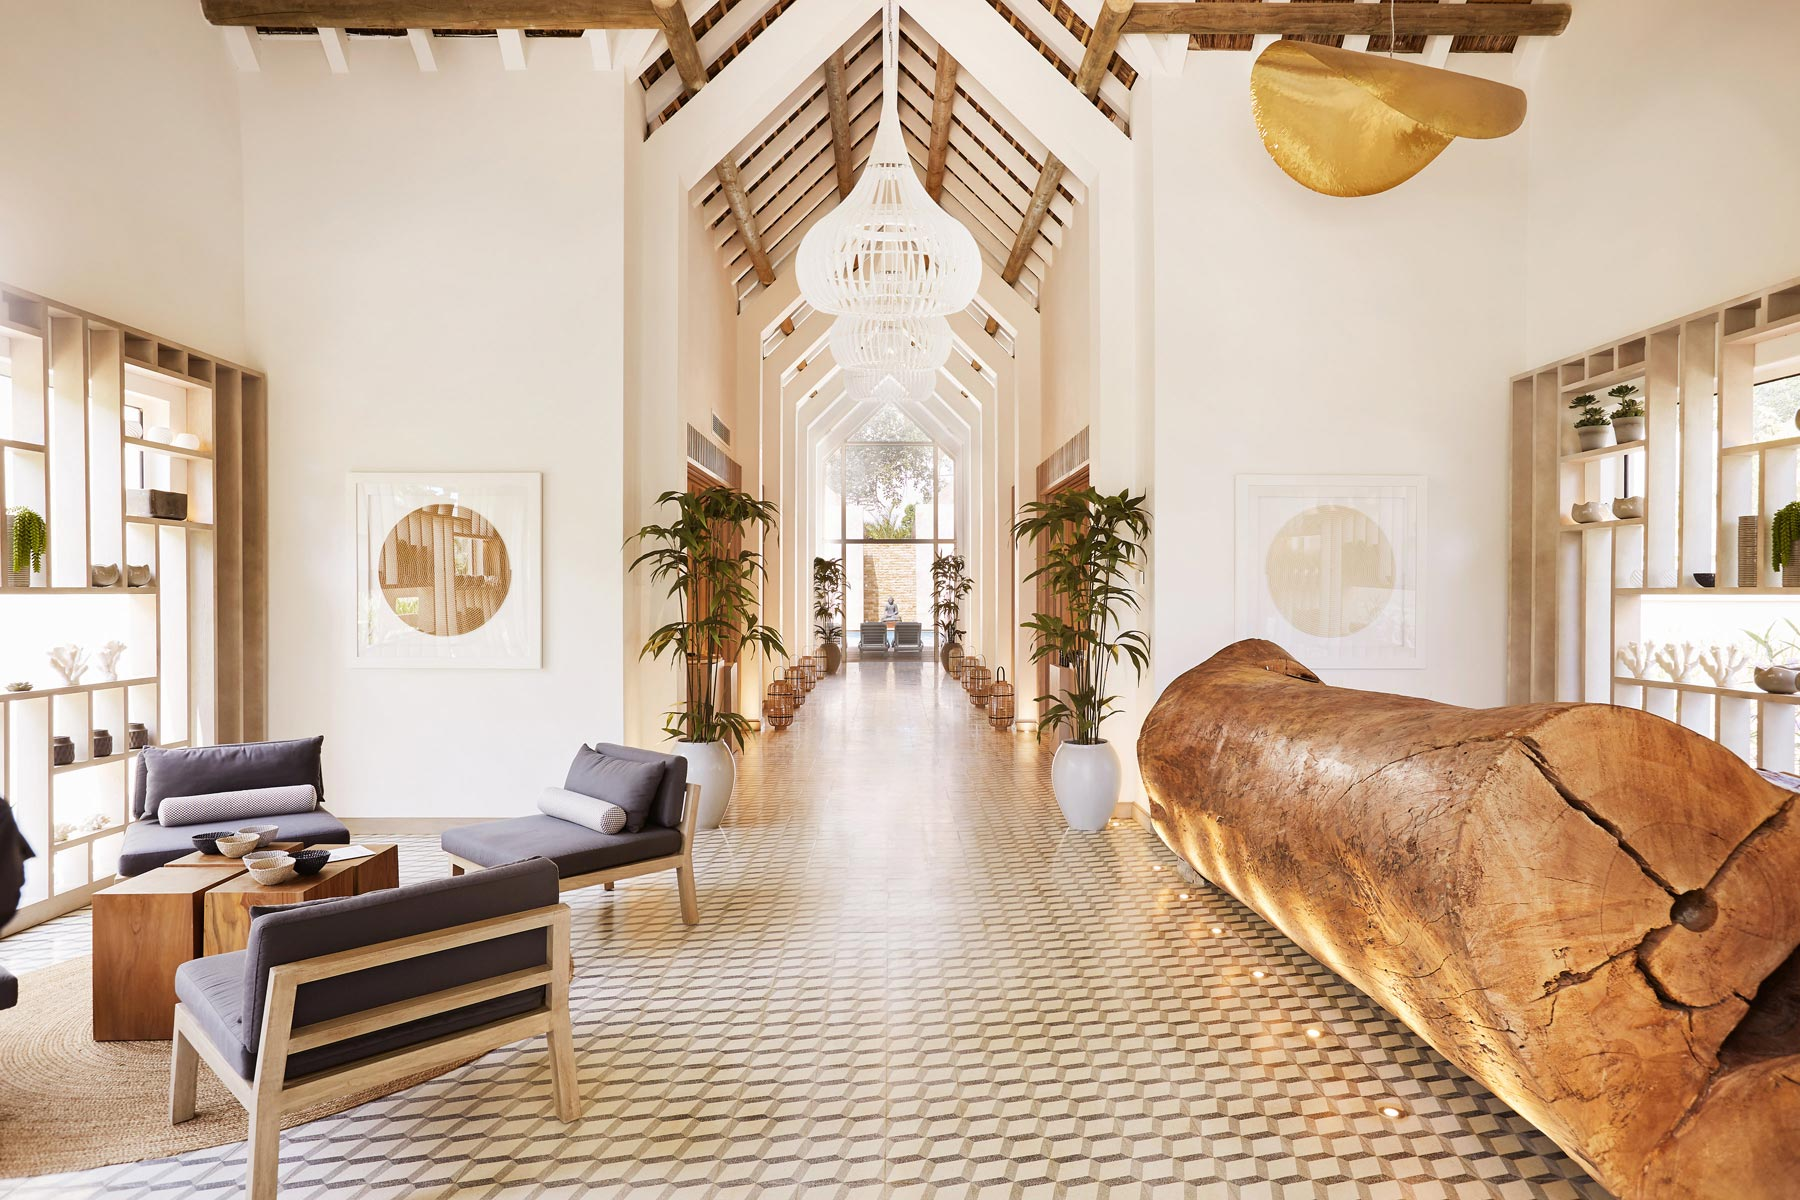 hotel design hotel design Hotel design: Luxurious hotels that will inspire you Lux Hotel Resort     Mauritius Kelly Hoppen